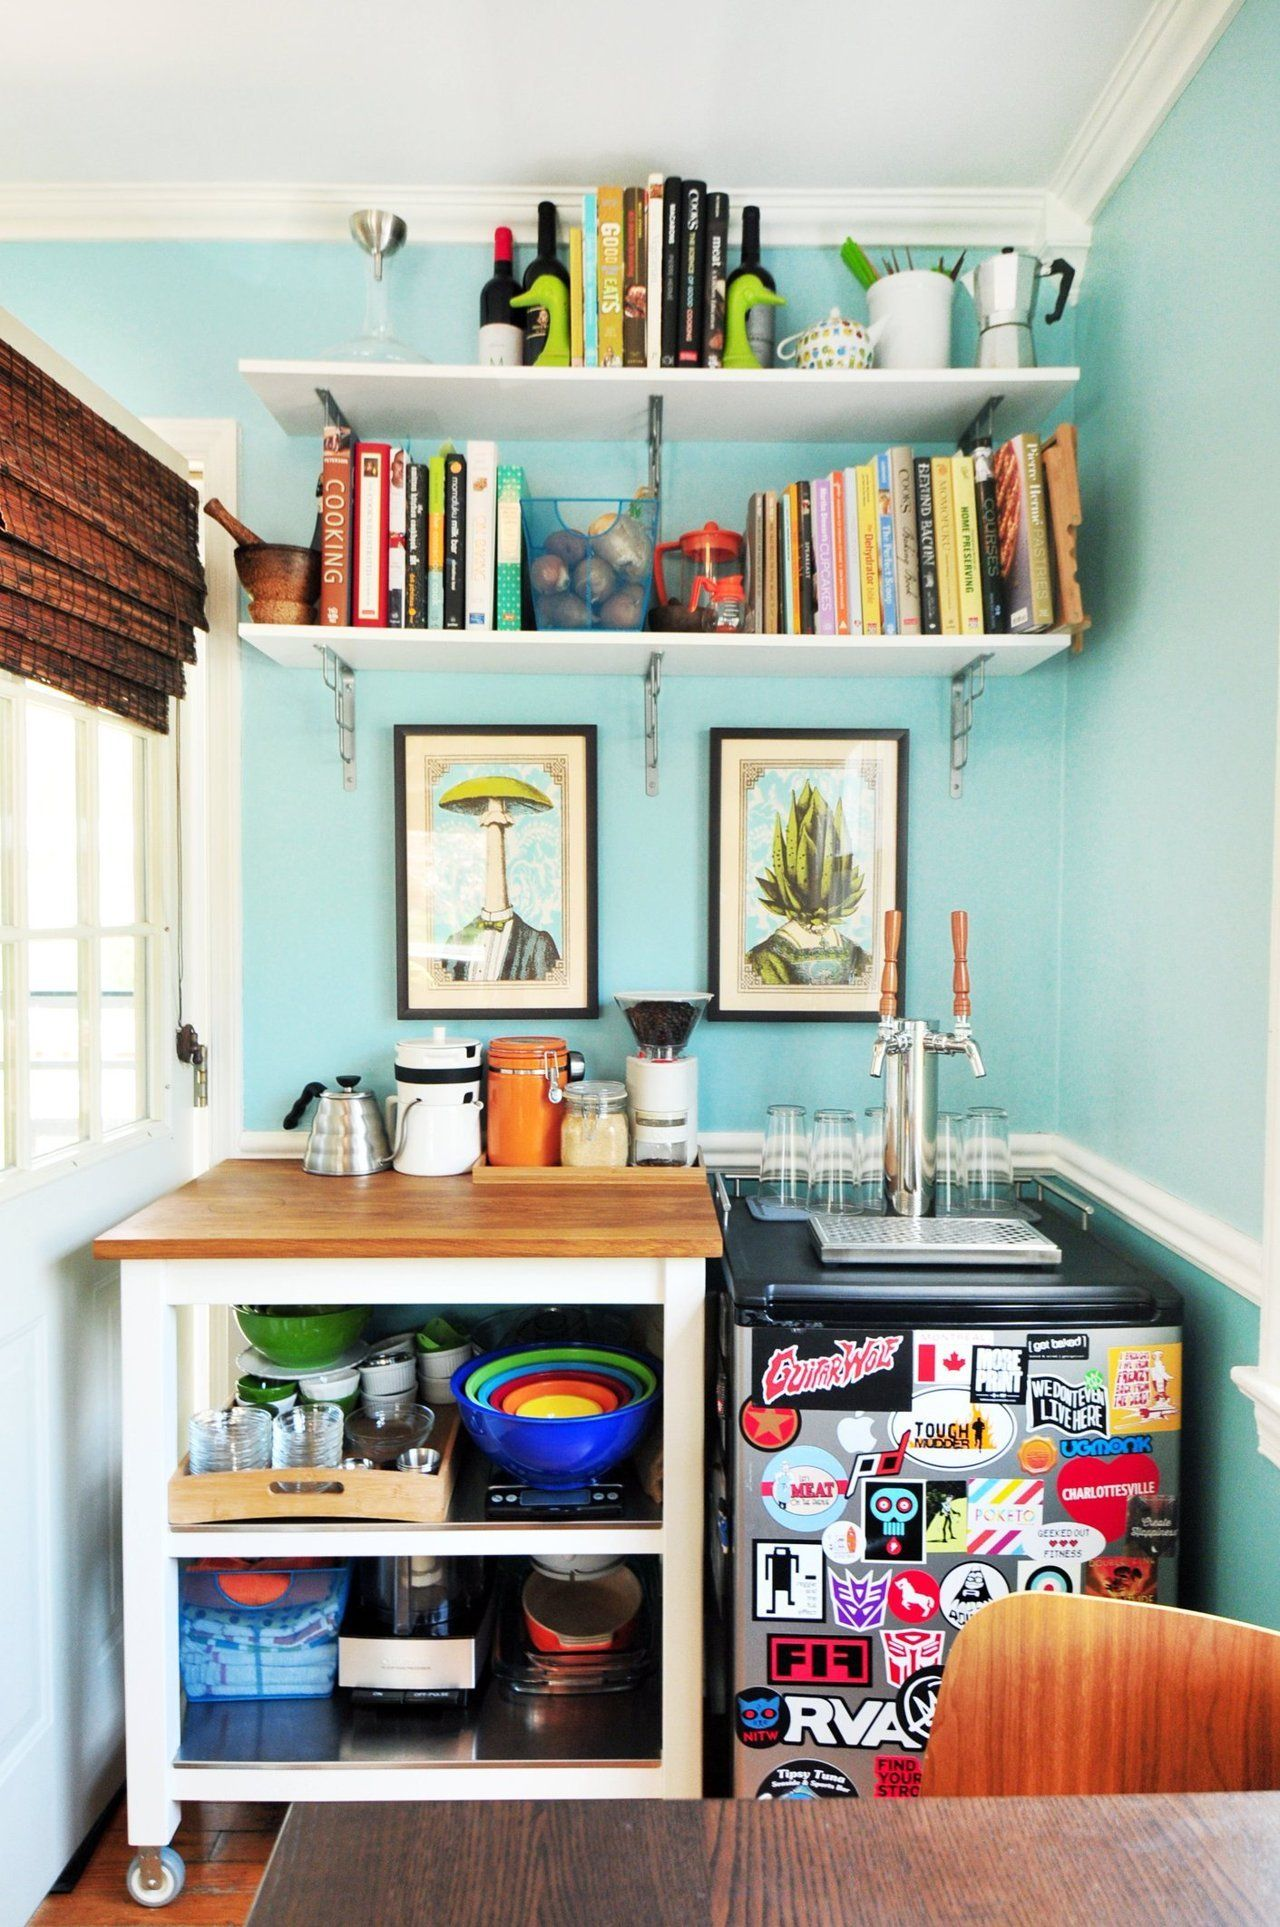 House Tour: A Colorful and Animated Abode | Kitchens, House and Spaces